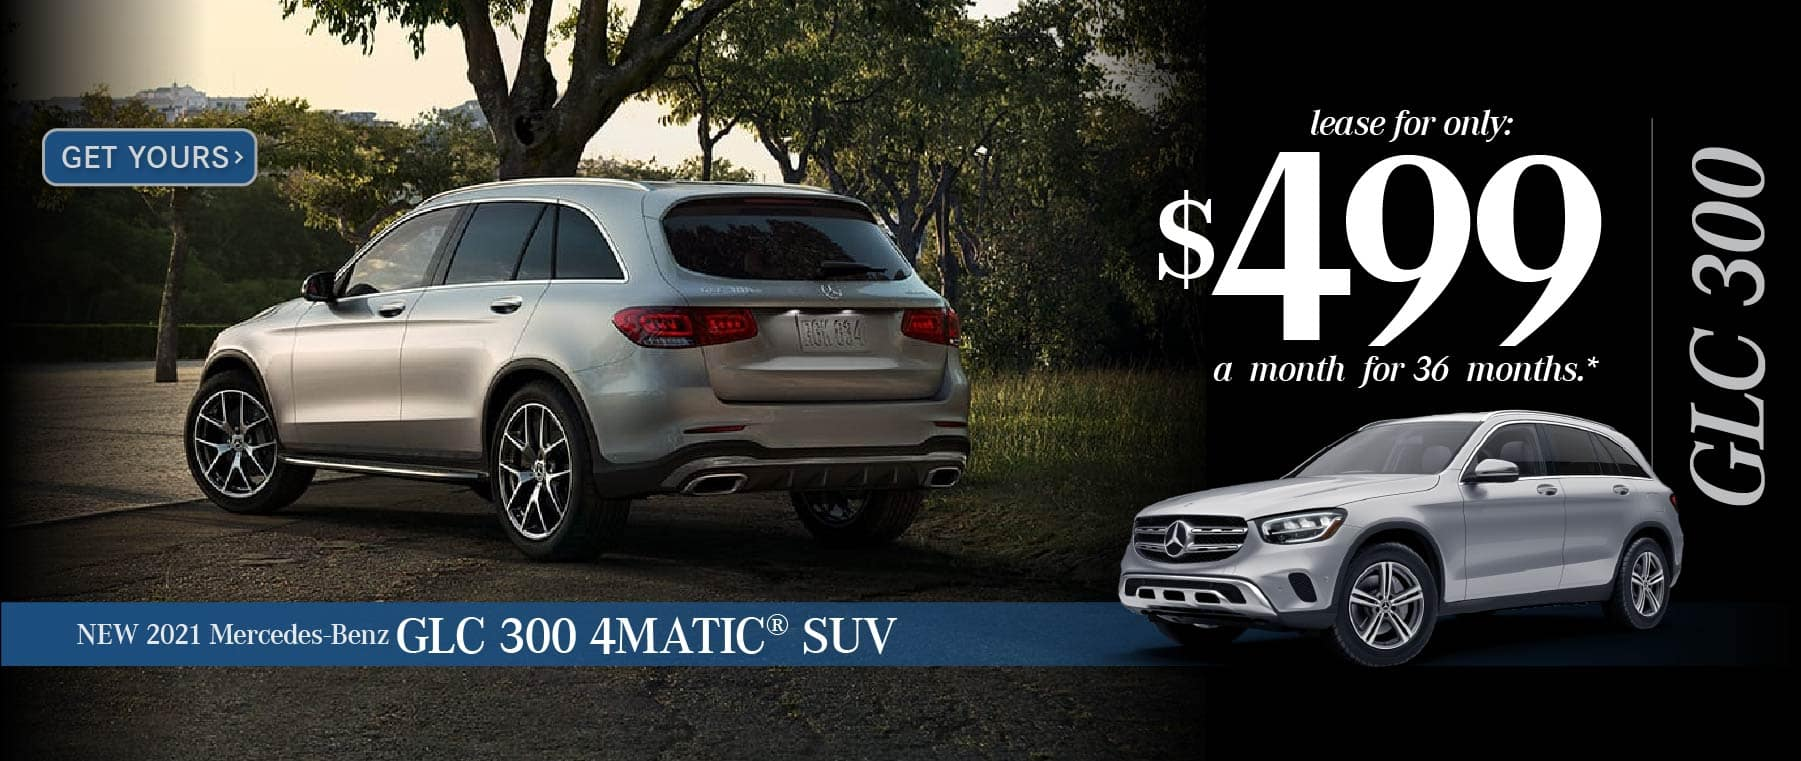 New 2021 Mercedes-Benz GLC 300 - Lease for only $499 a month for 36 months - Get Yours